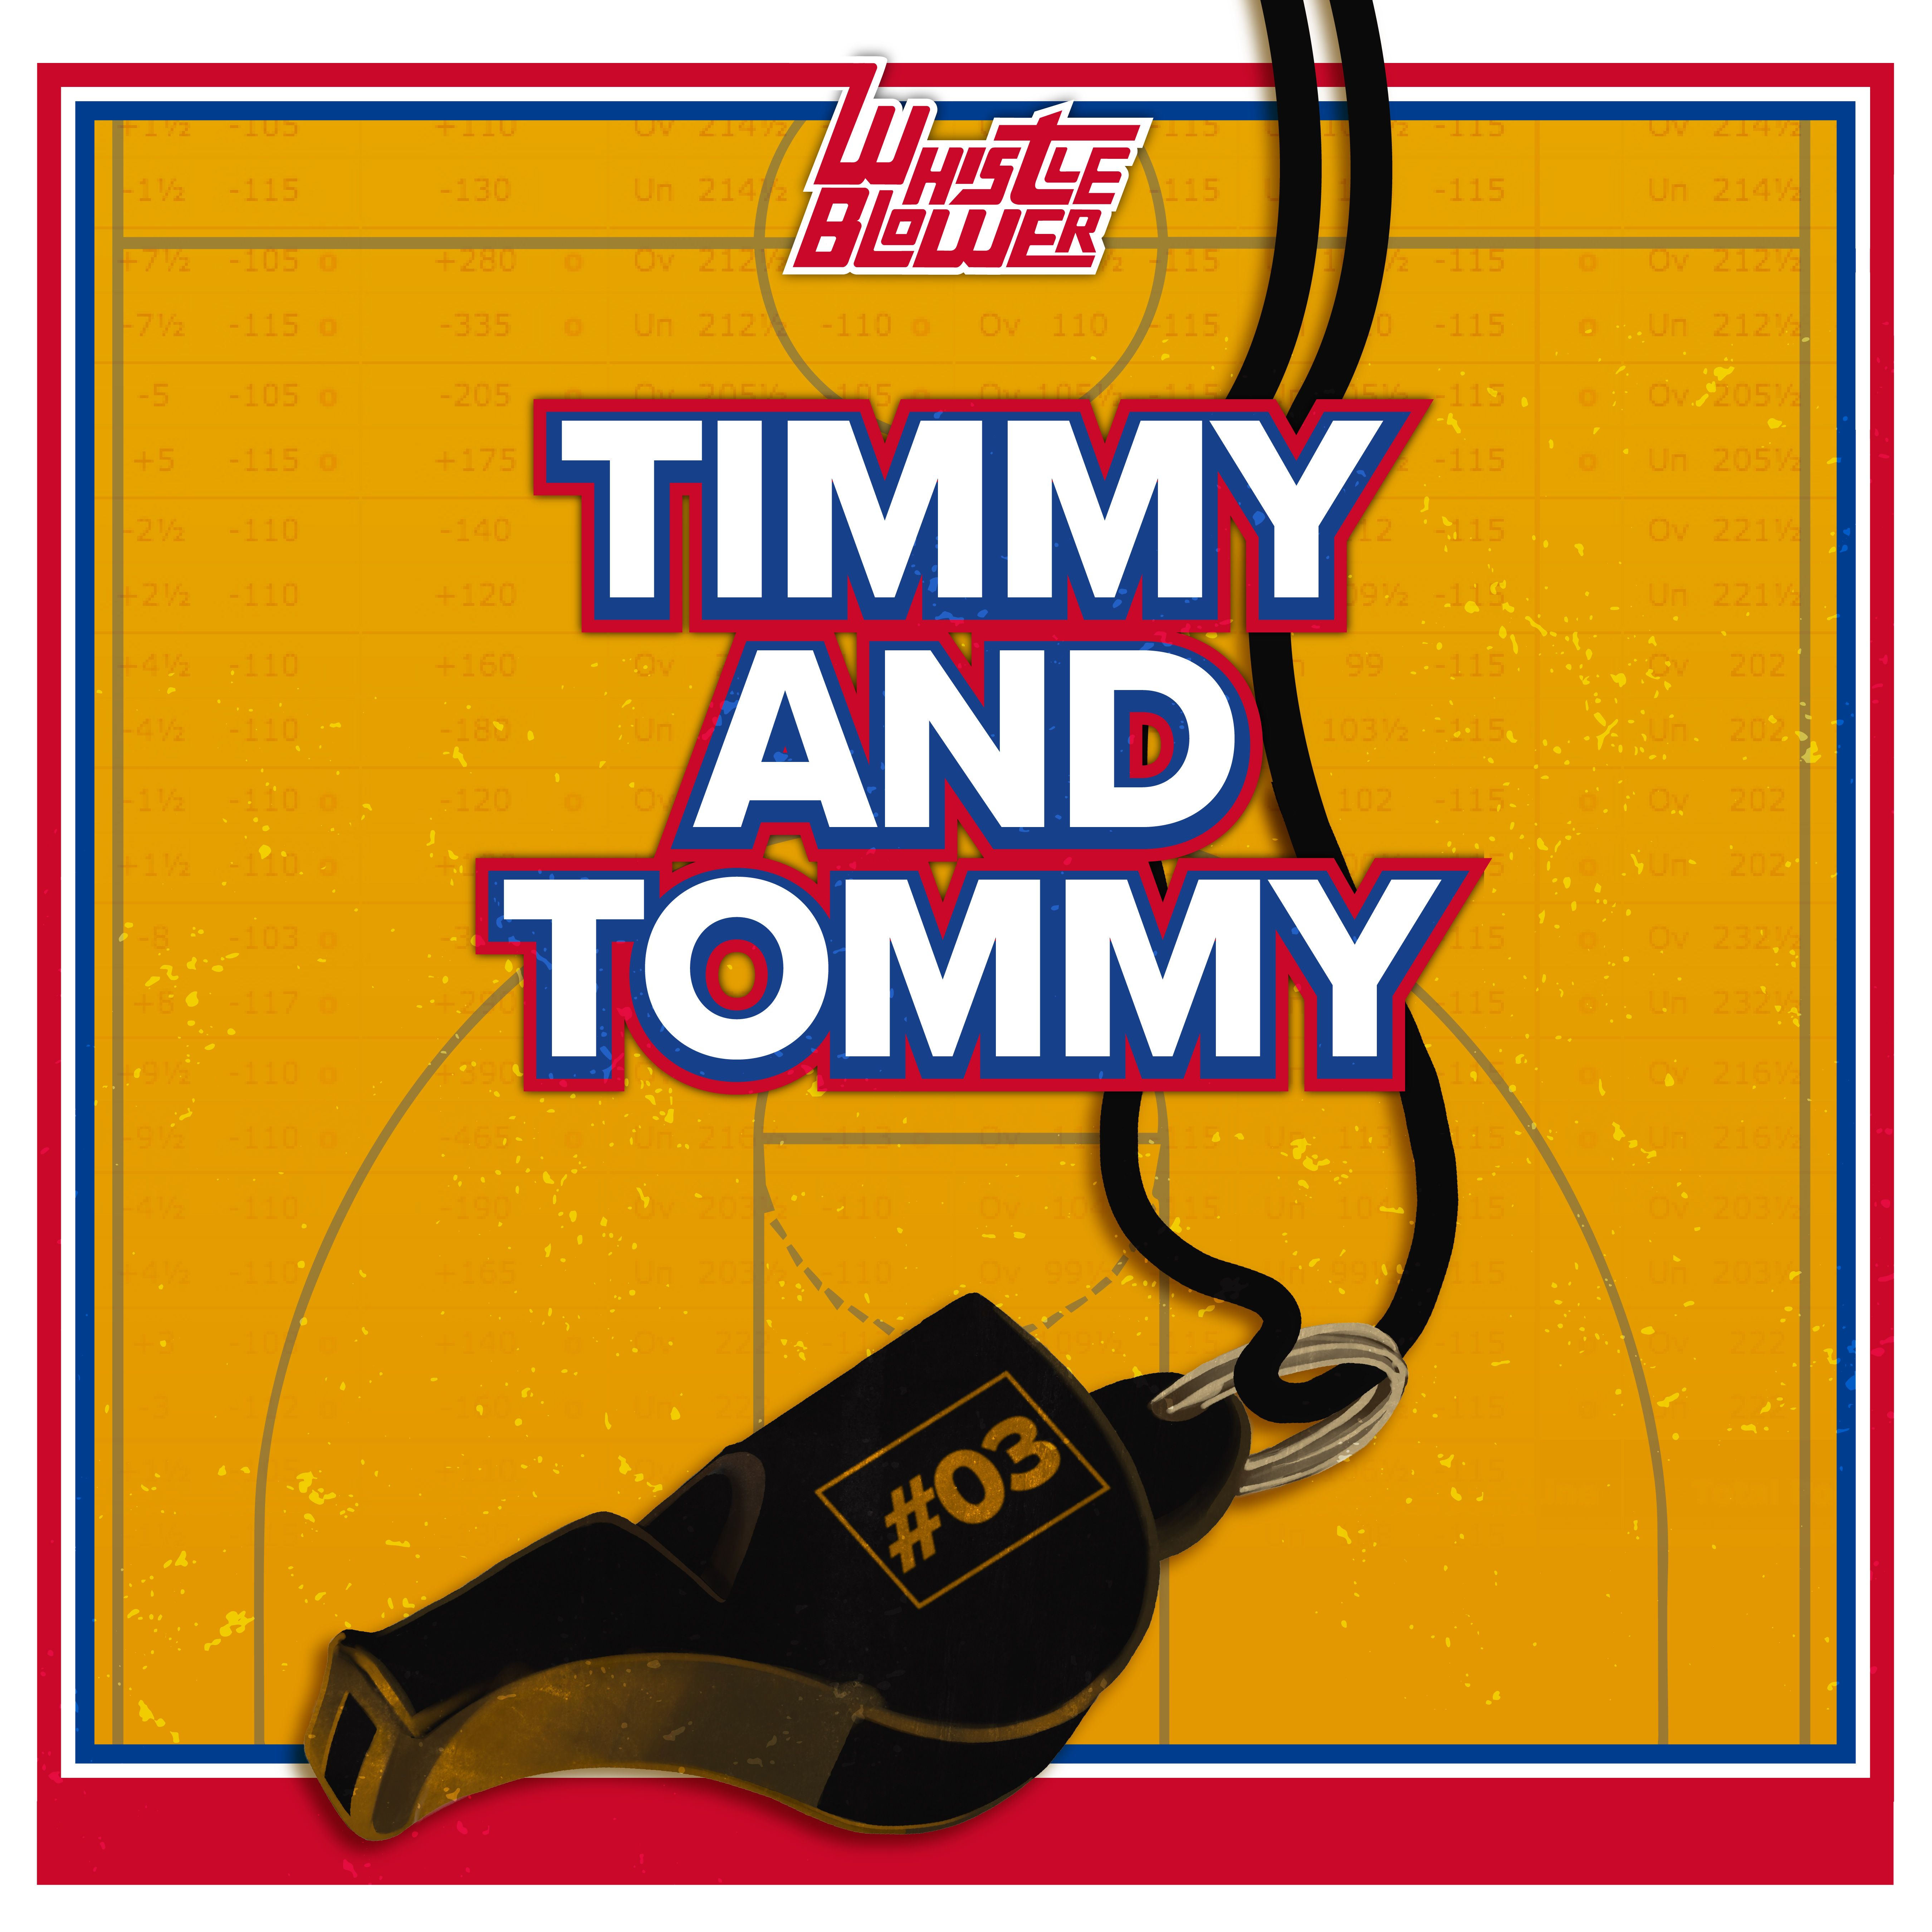 Timmy and Tommy